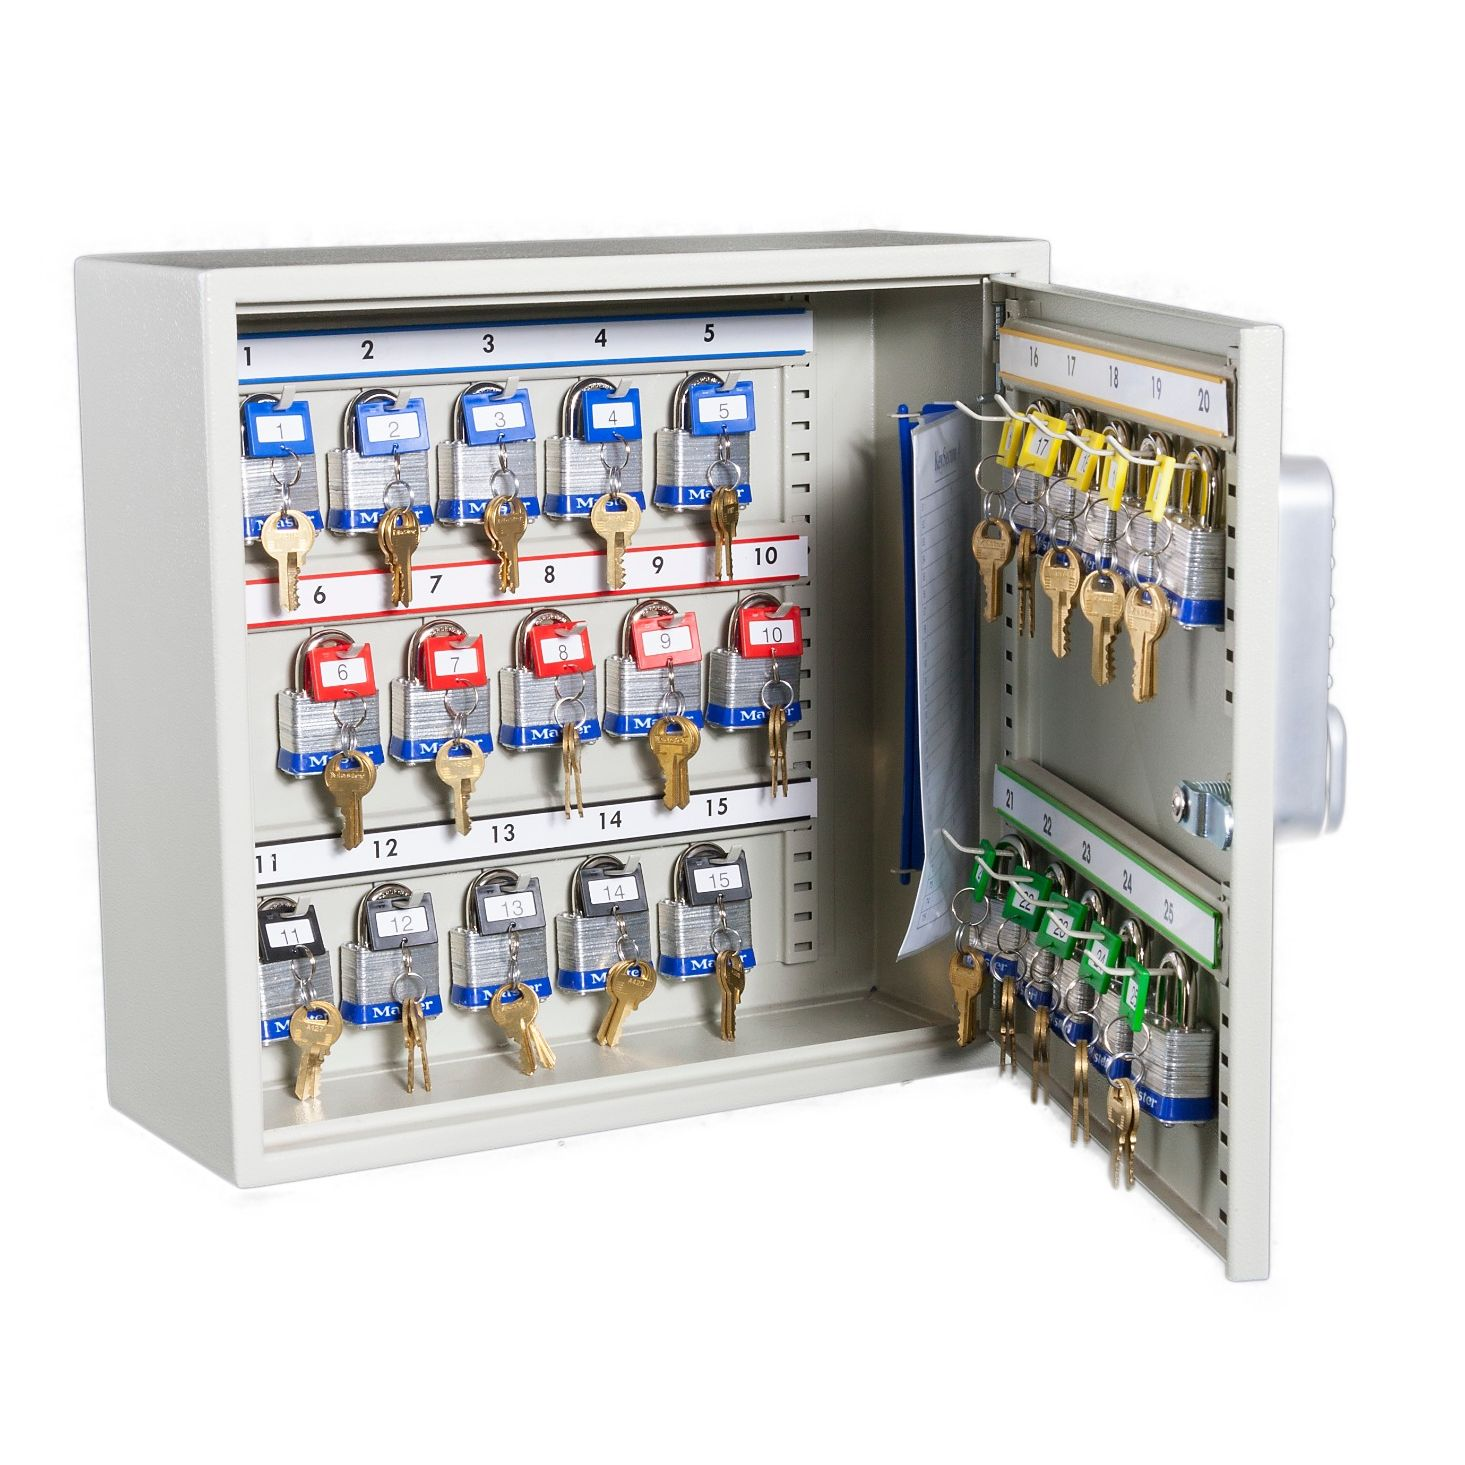 high_capacity_key_cabinets_with_electronic_cam_lock_25_hook_open.jpg